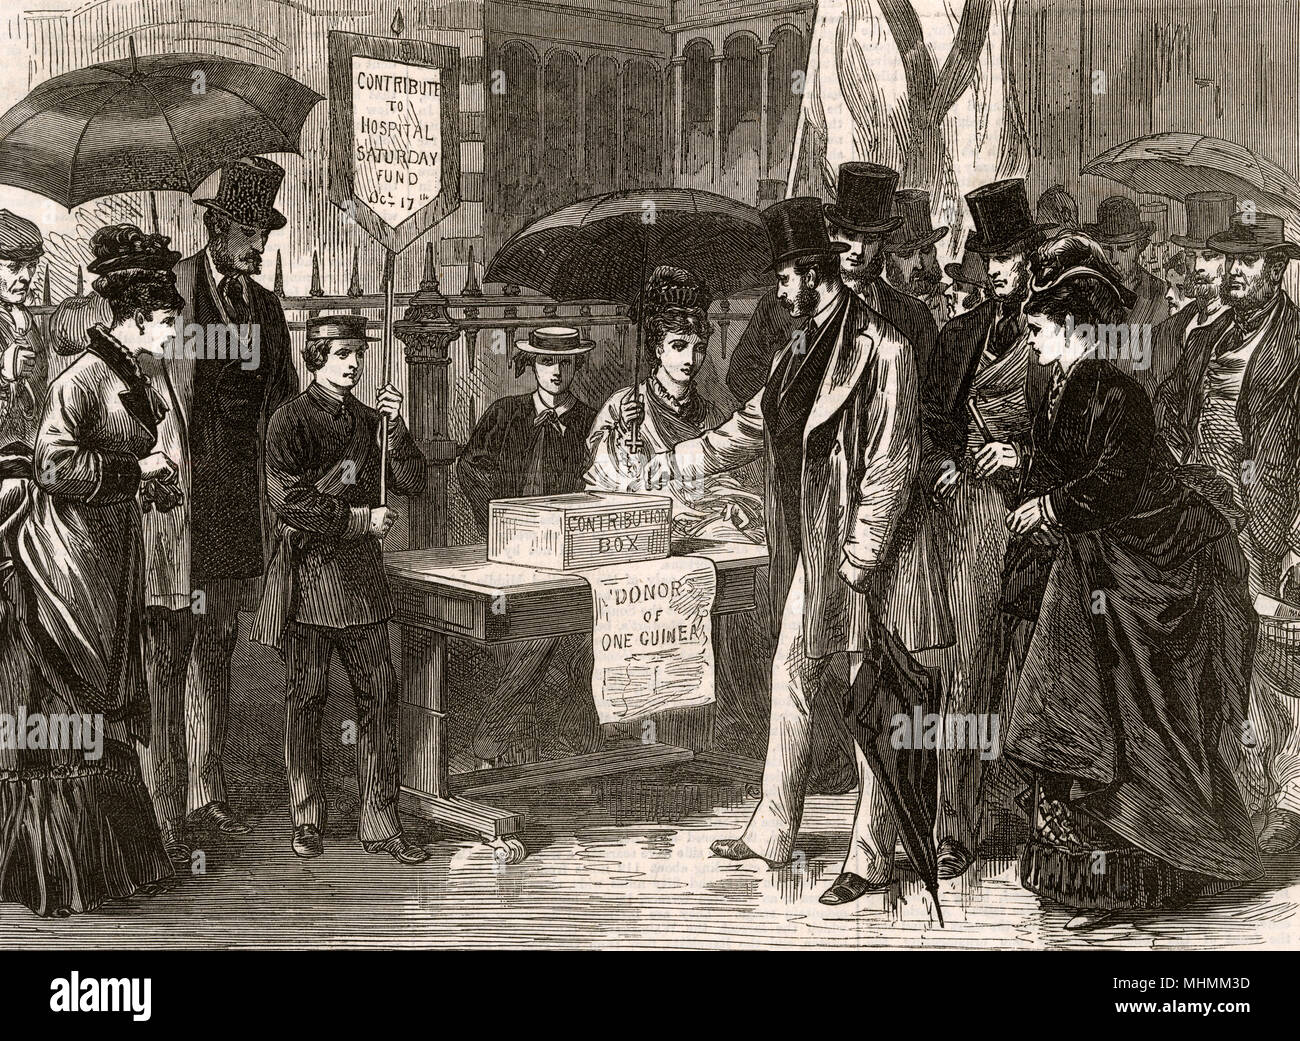 In the streets of London passers-by contribute to 'Hospital Saturday', putting their guineas in the collection box.     Date: 1874 - Stock Image